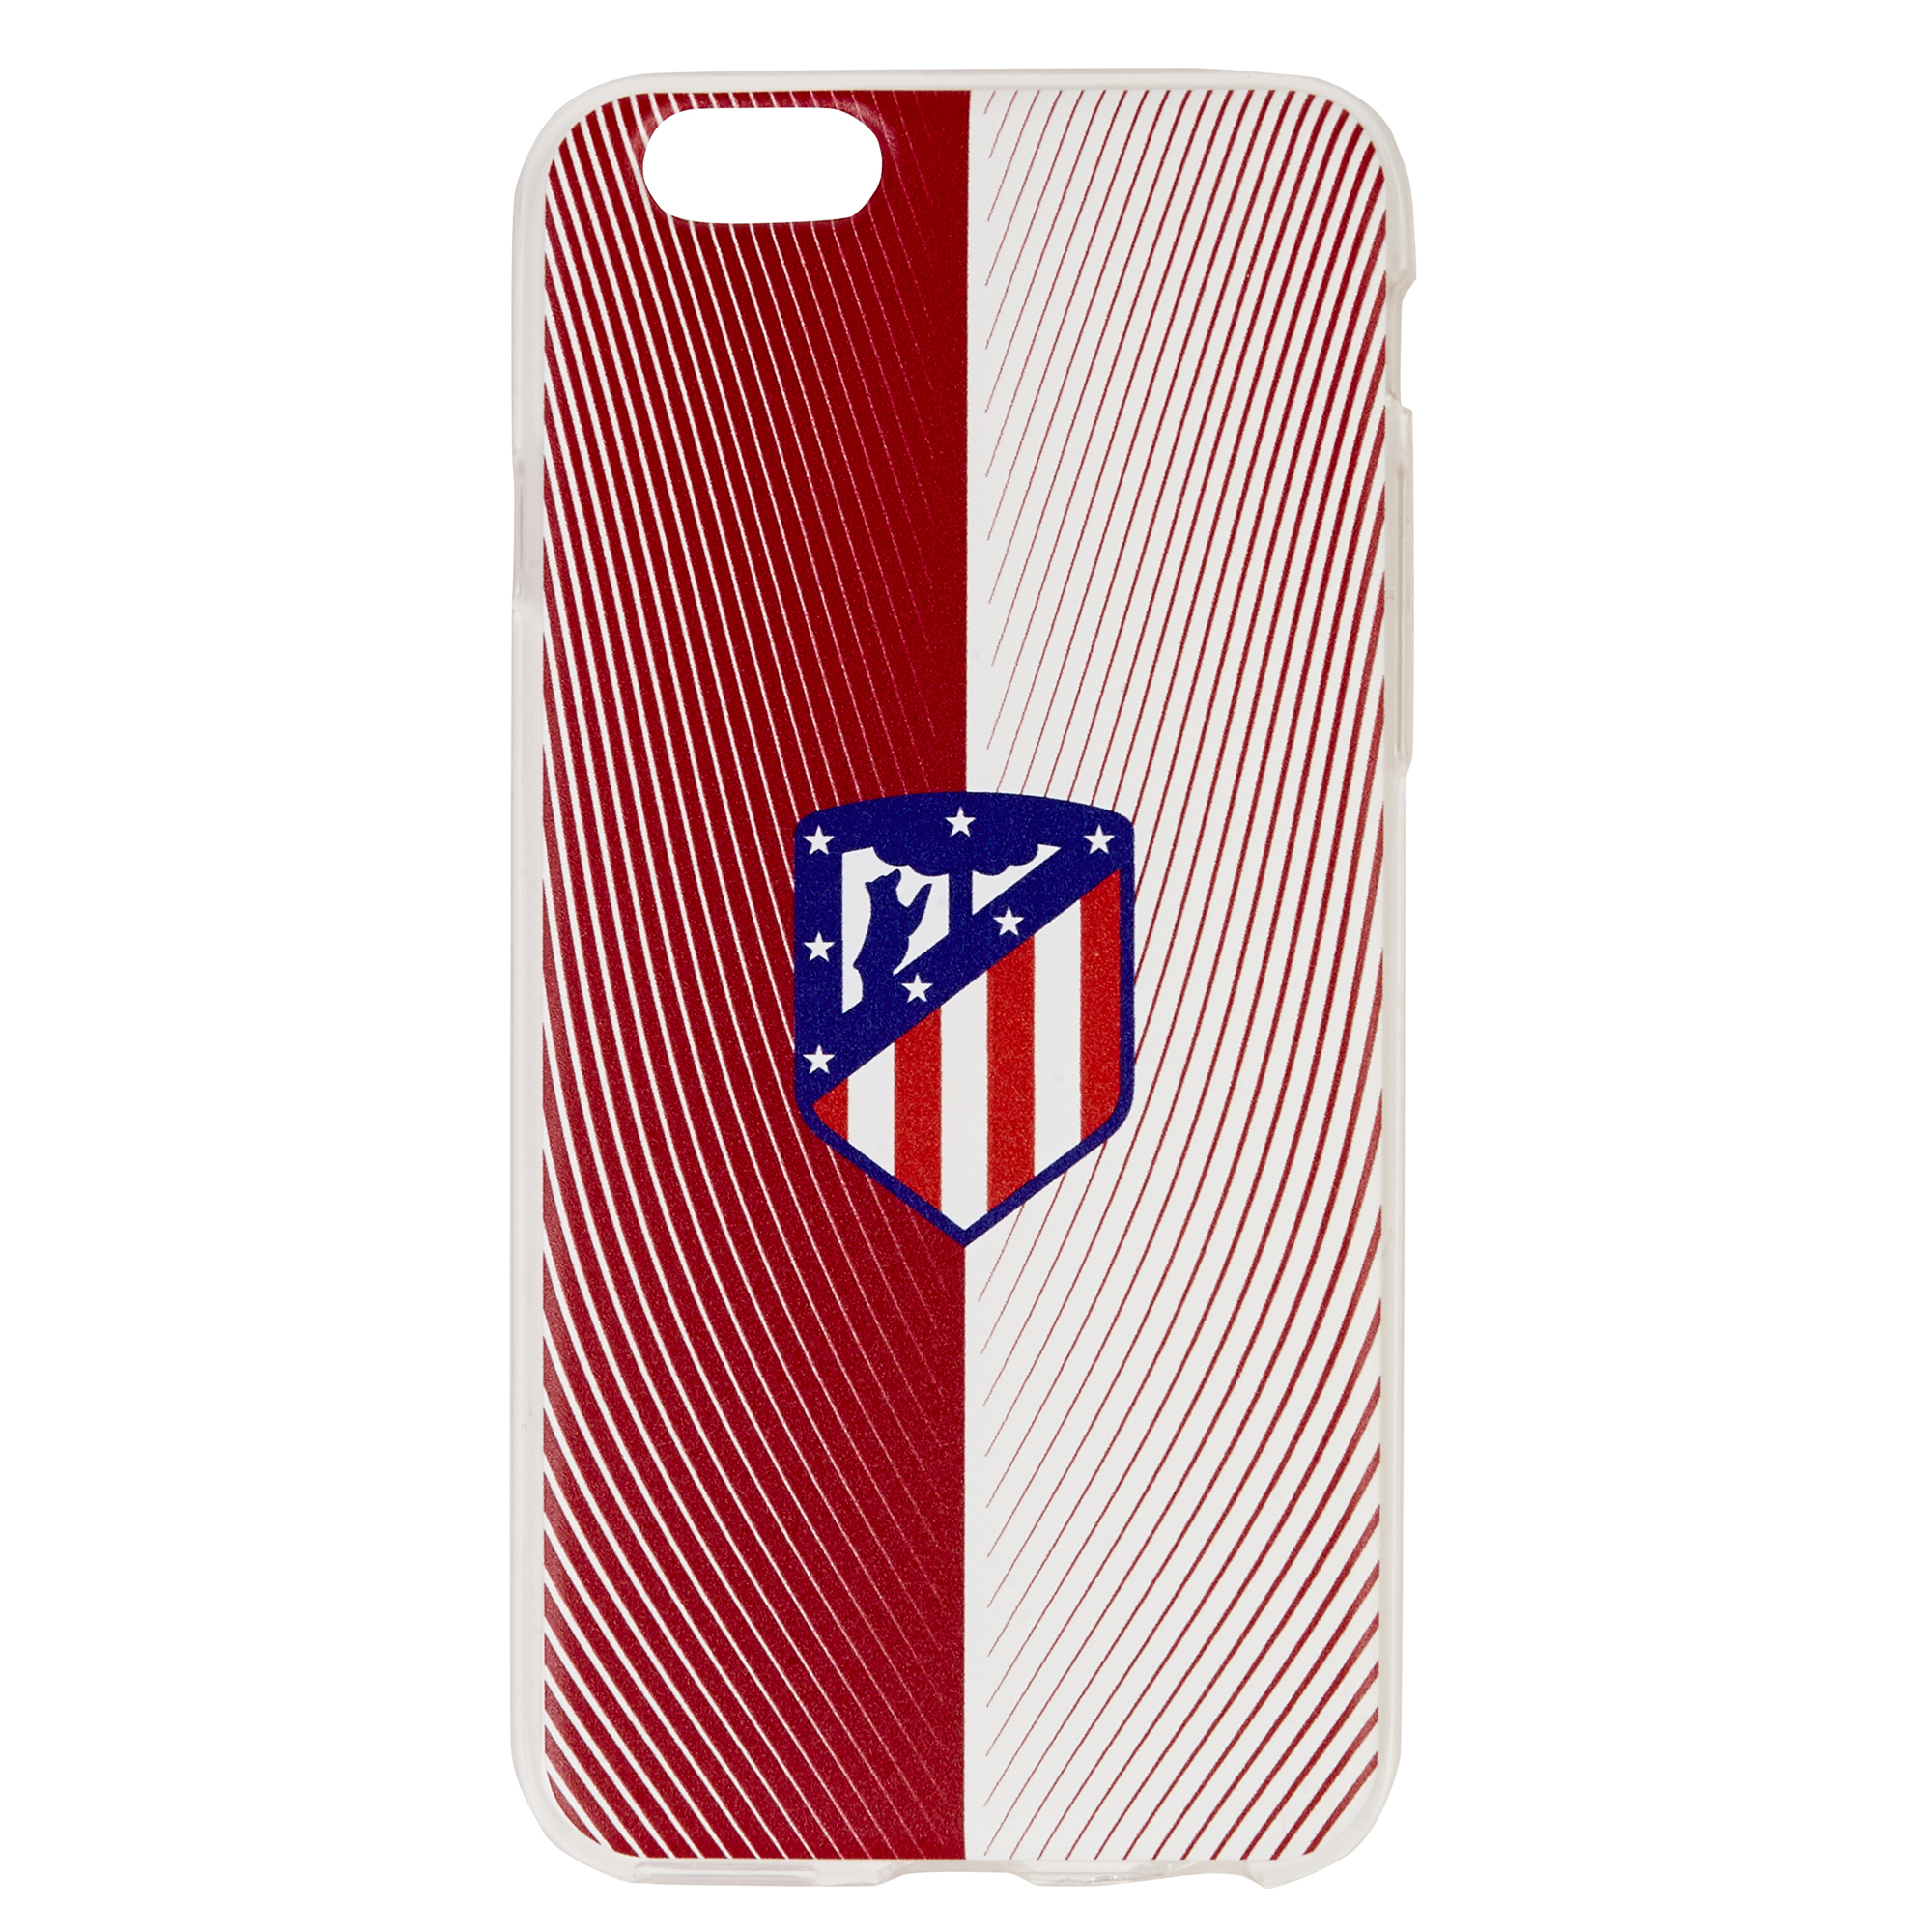 Carcasa para iPhone 6/6S del Atlético de Madrid - Retro